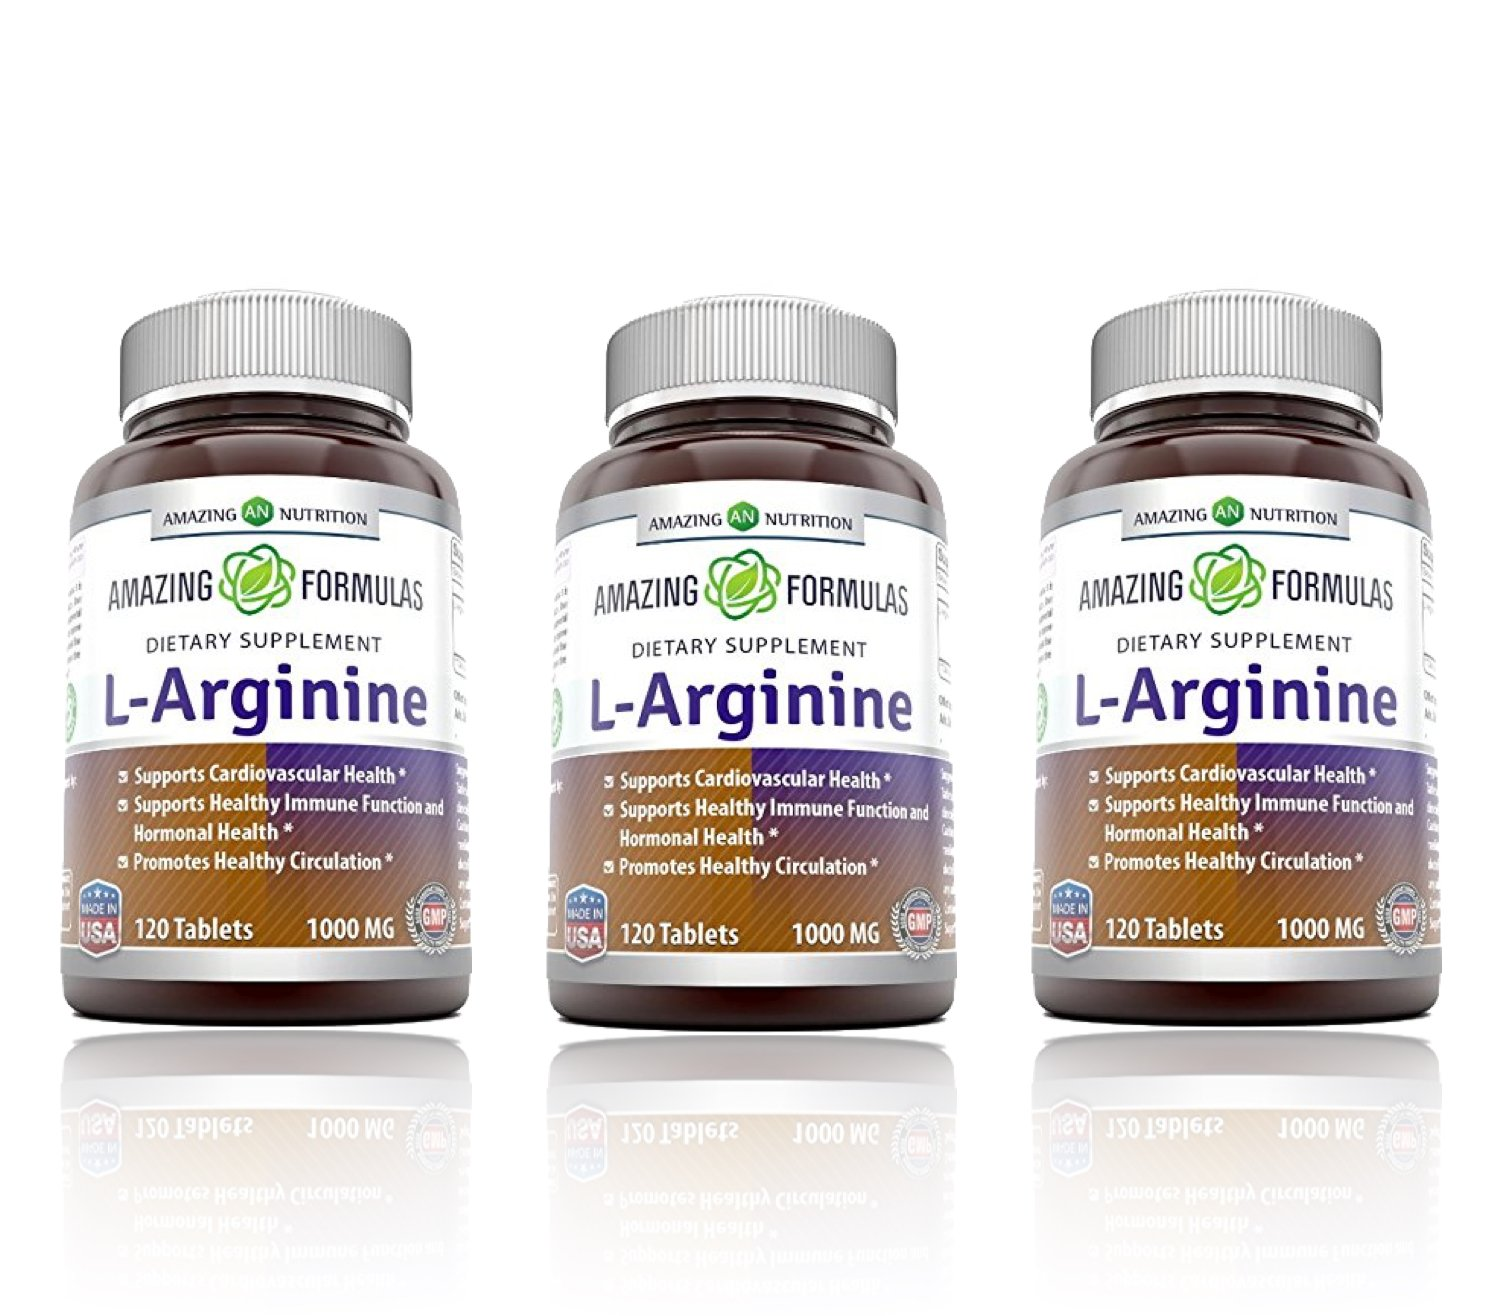 Amazing Formulas L-Arginine 1000mg Supplement - Best Amino Acid Arginine HCL Supplements for Women & Man - Promotes Circulation and Supports Cardiovascular Health - 3 Pack by Amazing Nutrition